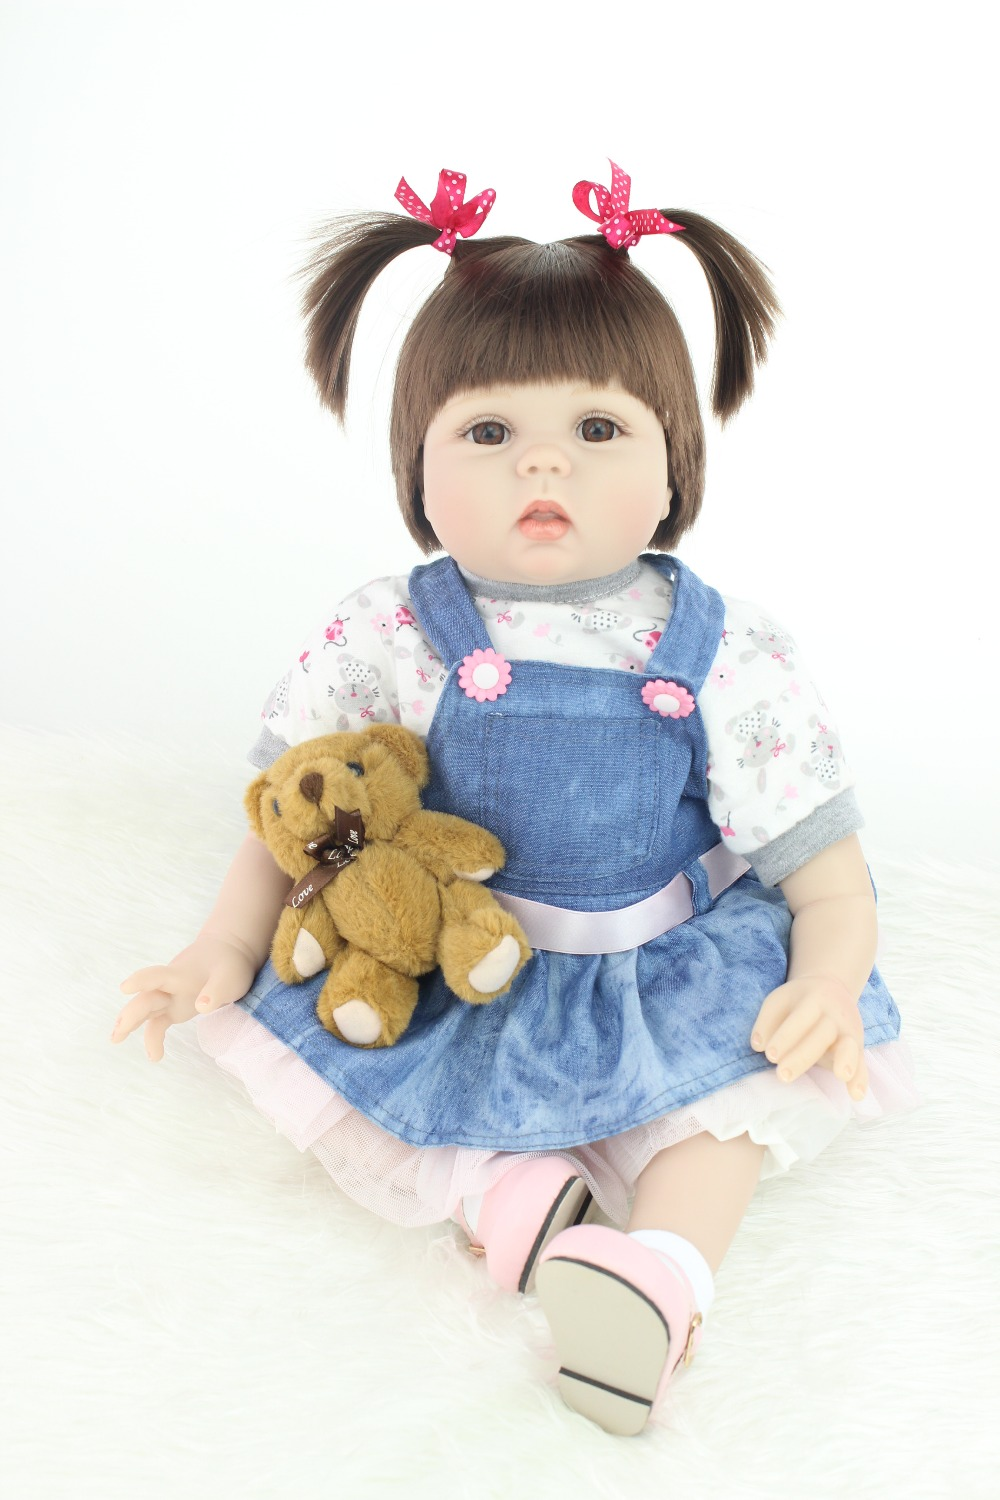 2015 NEW hot sale lifelike reborn baby doll rooted human hair 22mm brown eyes fashion doll Christmas gift old gift2015 NEW hot sale lifelike reborn baby doll rooted human hair 22mm brown eyes fashion doll Christmas gift old gift